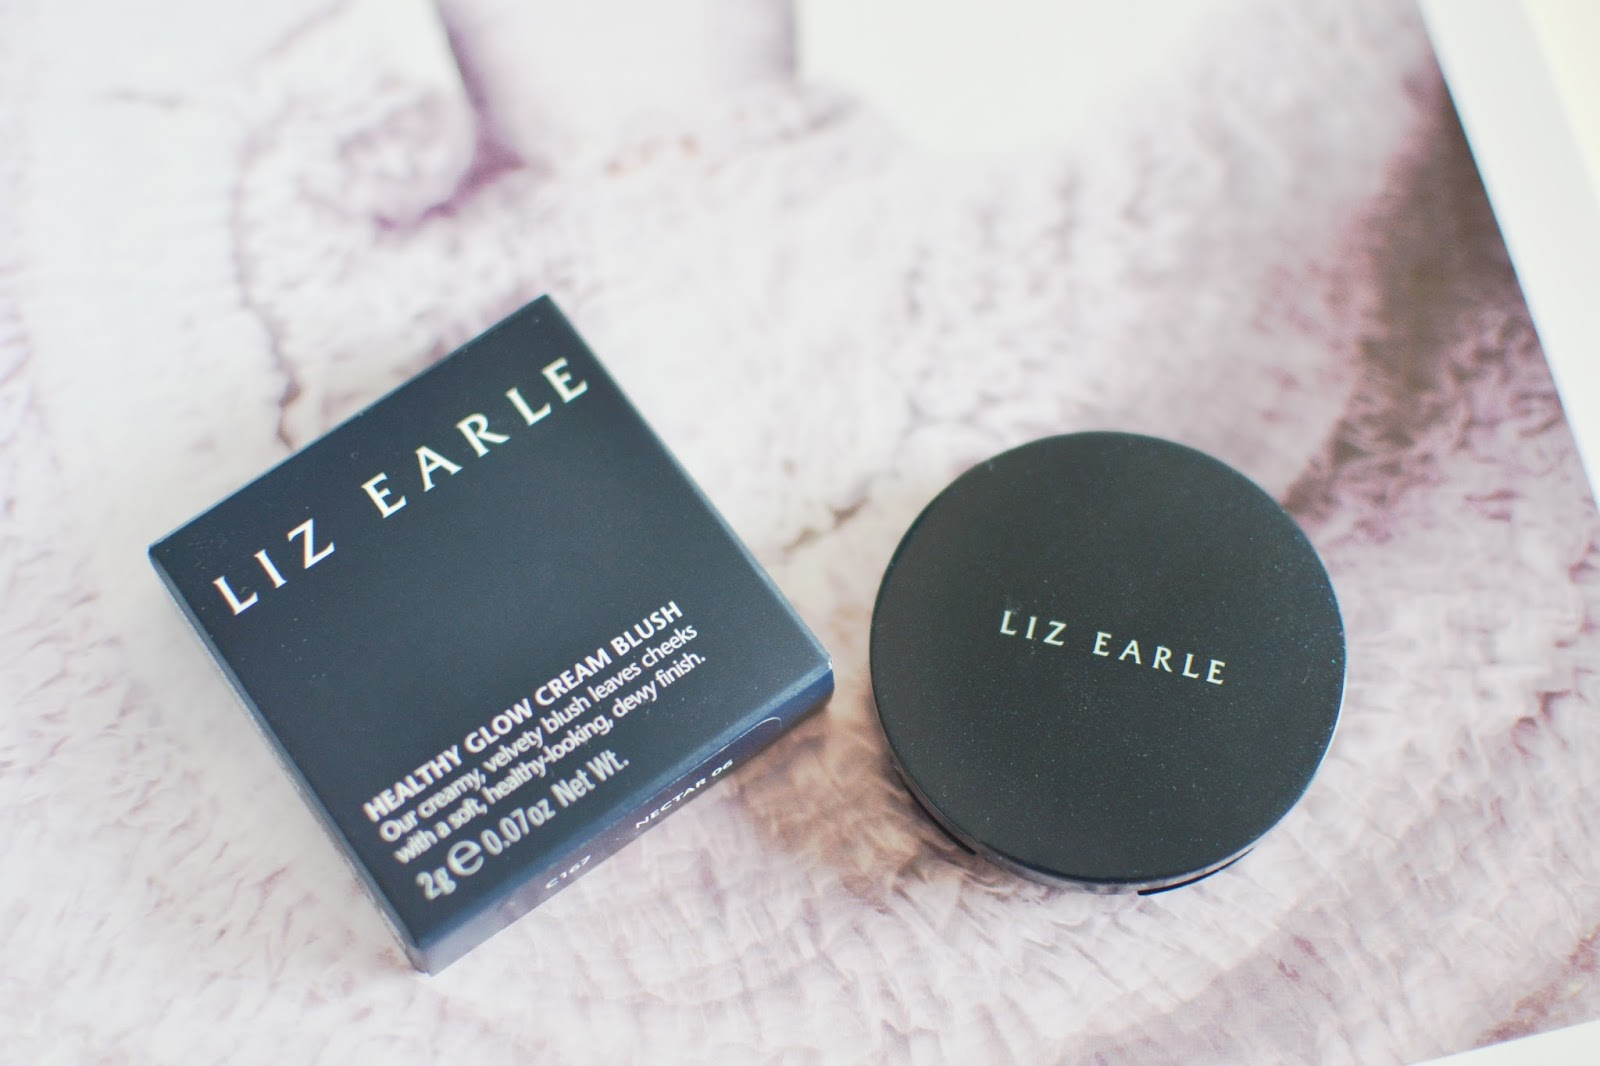 liz earle blush in nectar